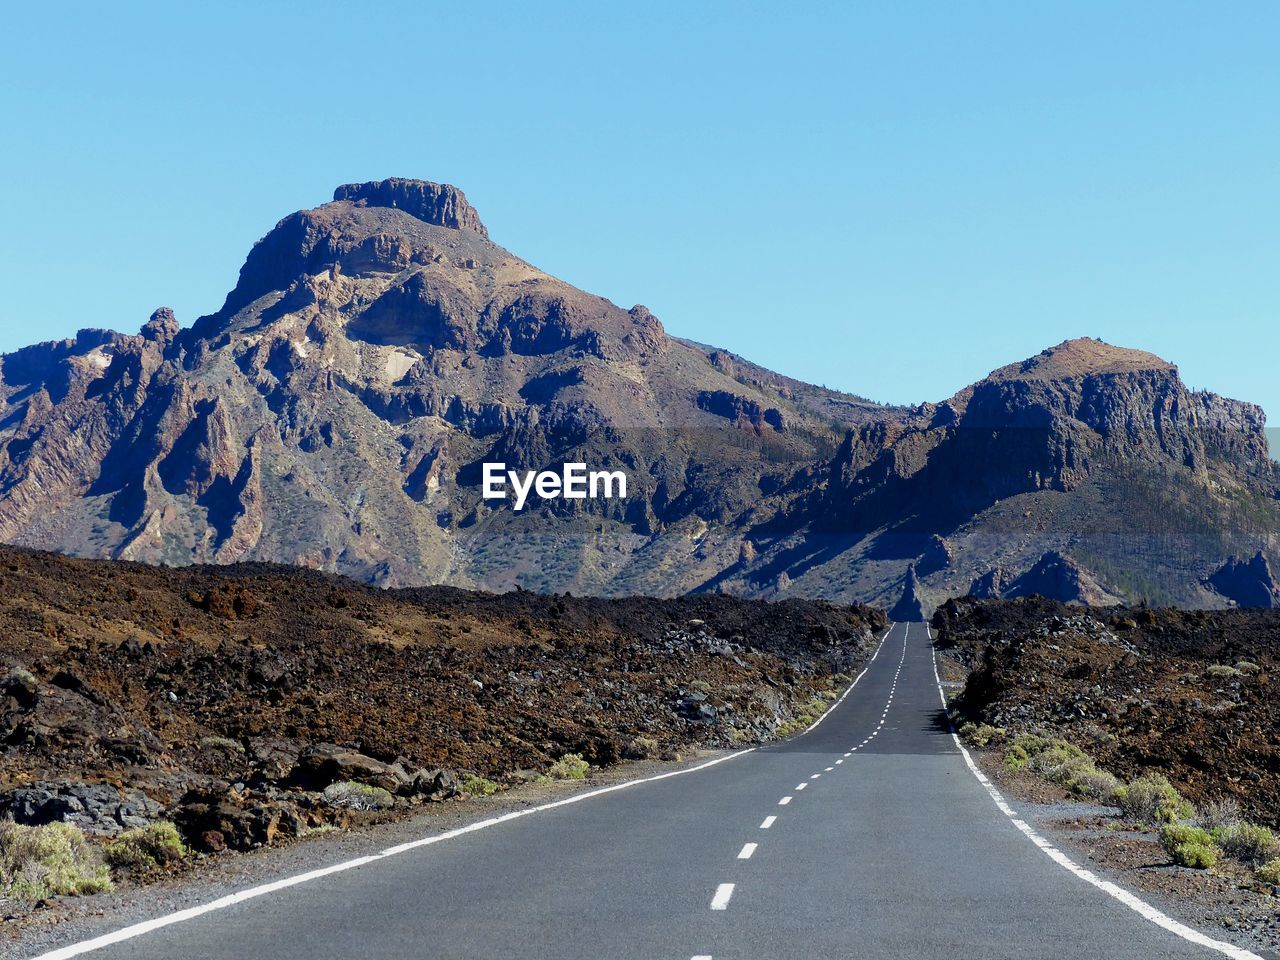 EMPTY ROAD AGAINST MOUNTAIN RANGE AGAINST CLEAR SKY